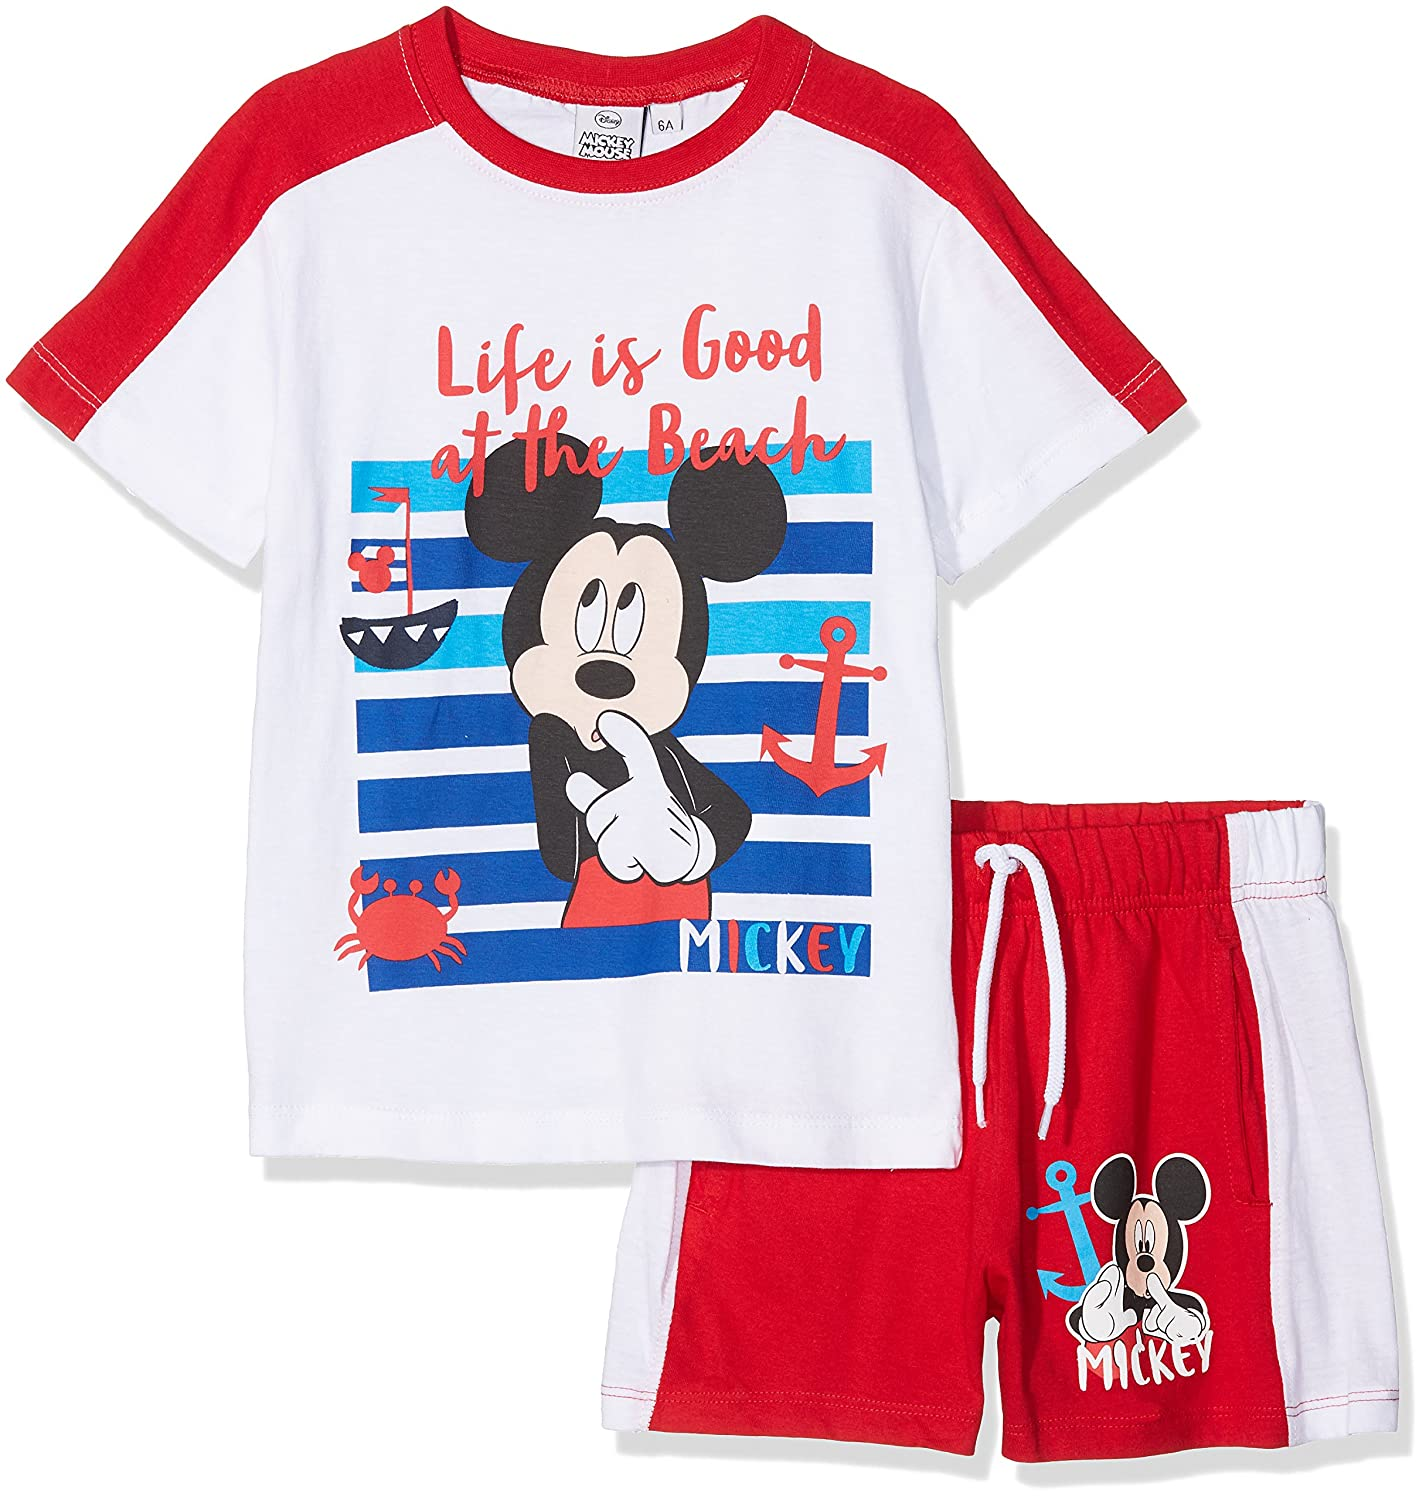 Disney Boy's Michey Mouse team Clothing Set, Red (Rosso), 128 (Manufacturer Size: 8Y) ER1428